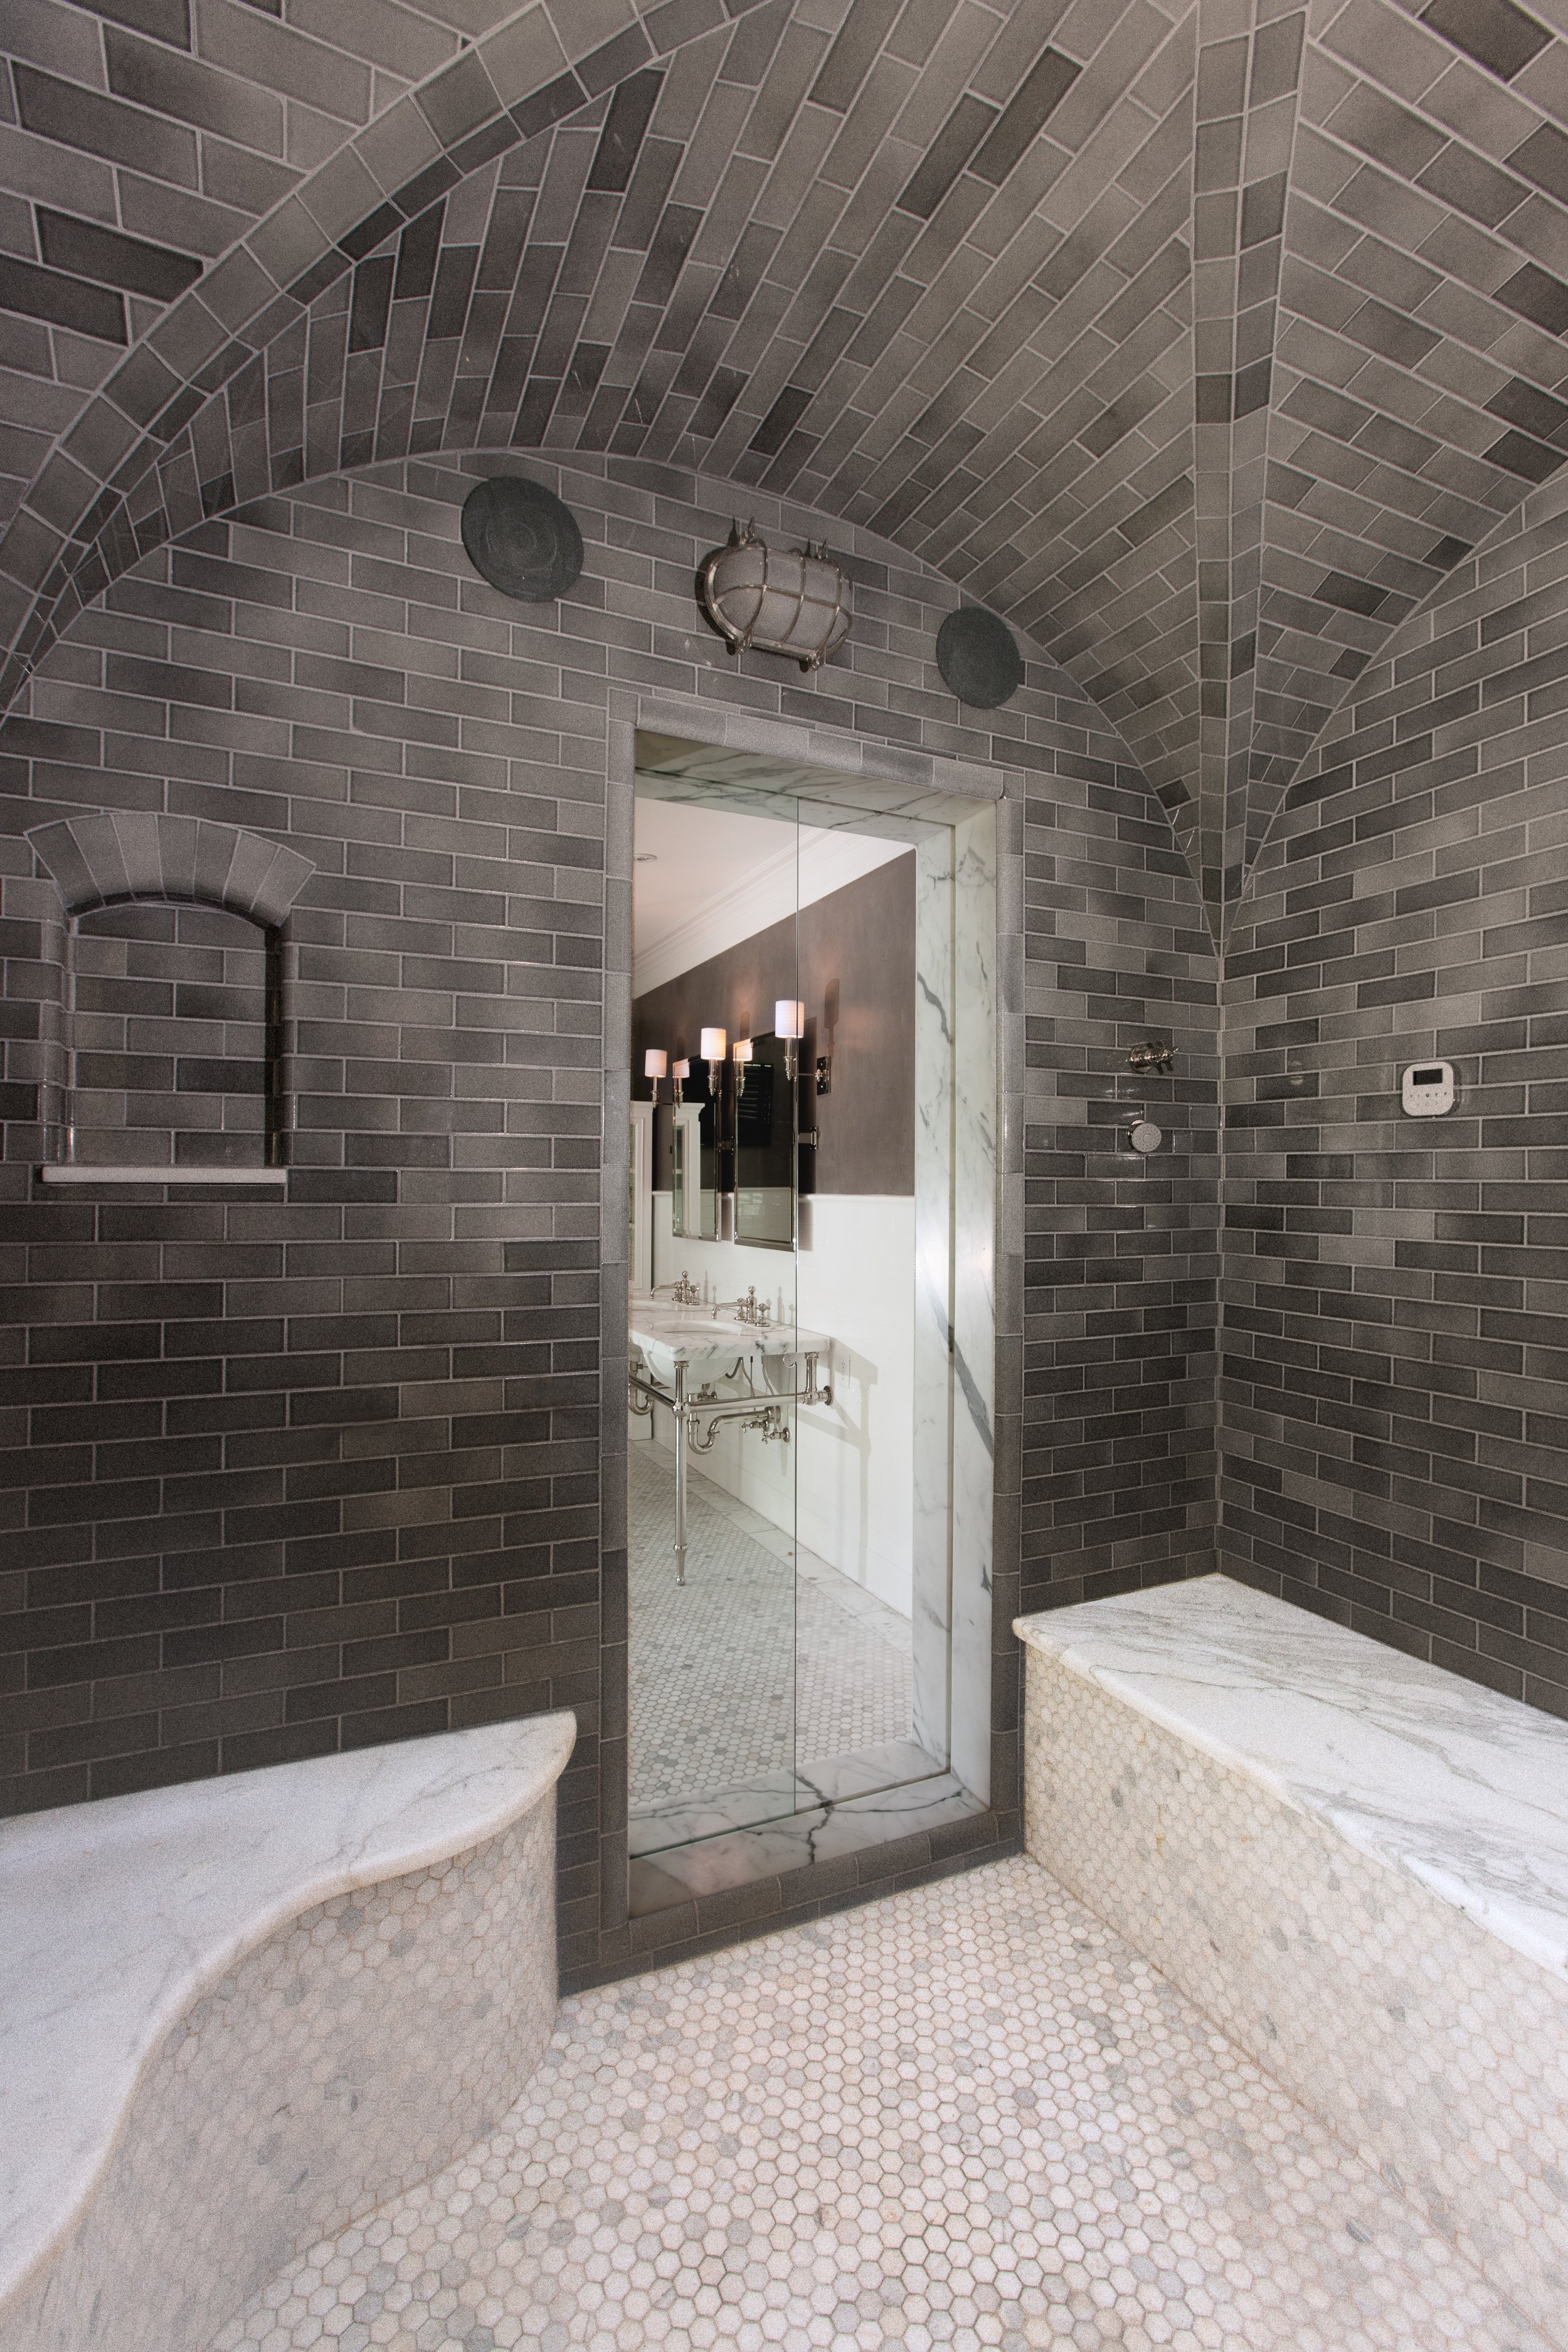 Interior of shower showing the Air-Pocket shower door.